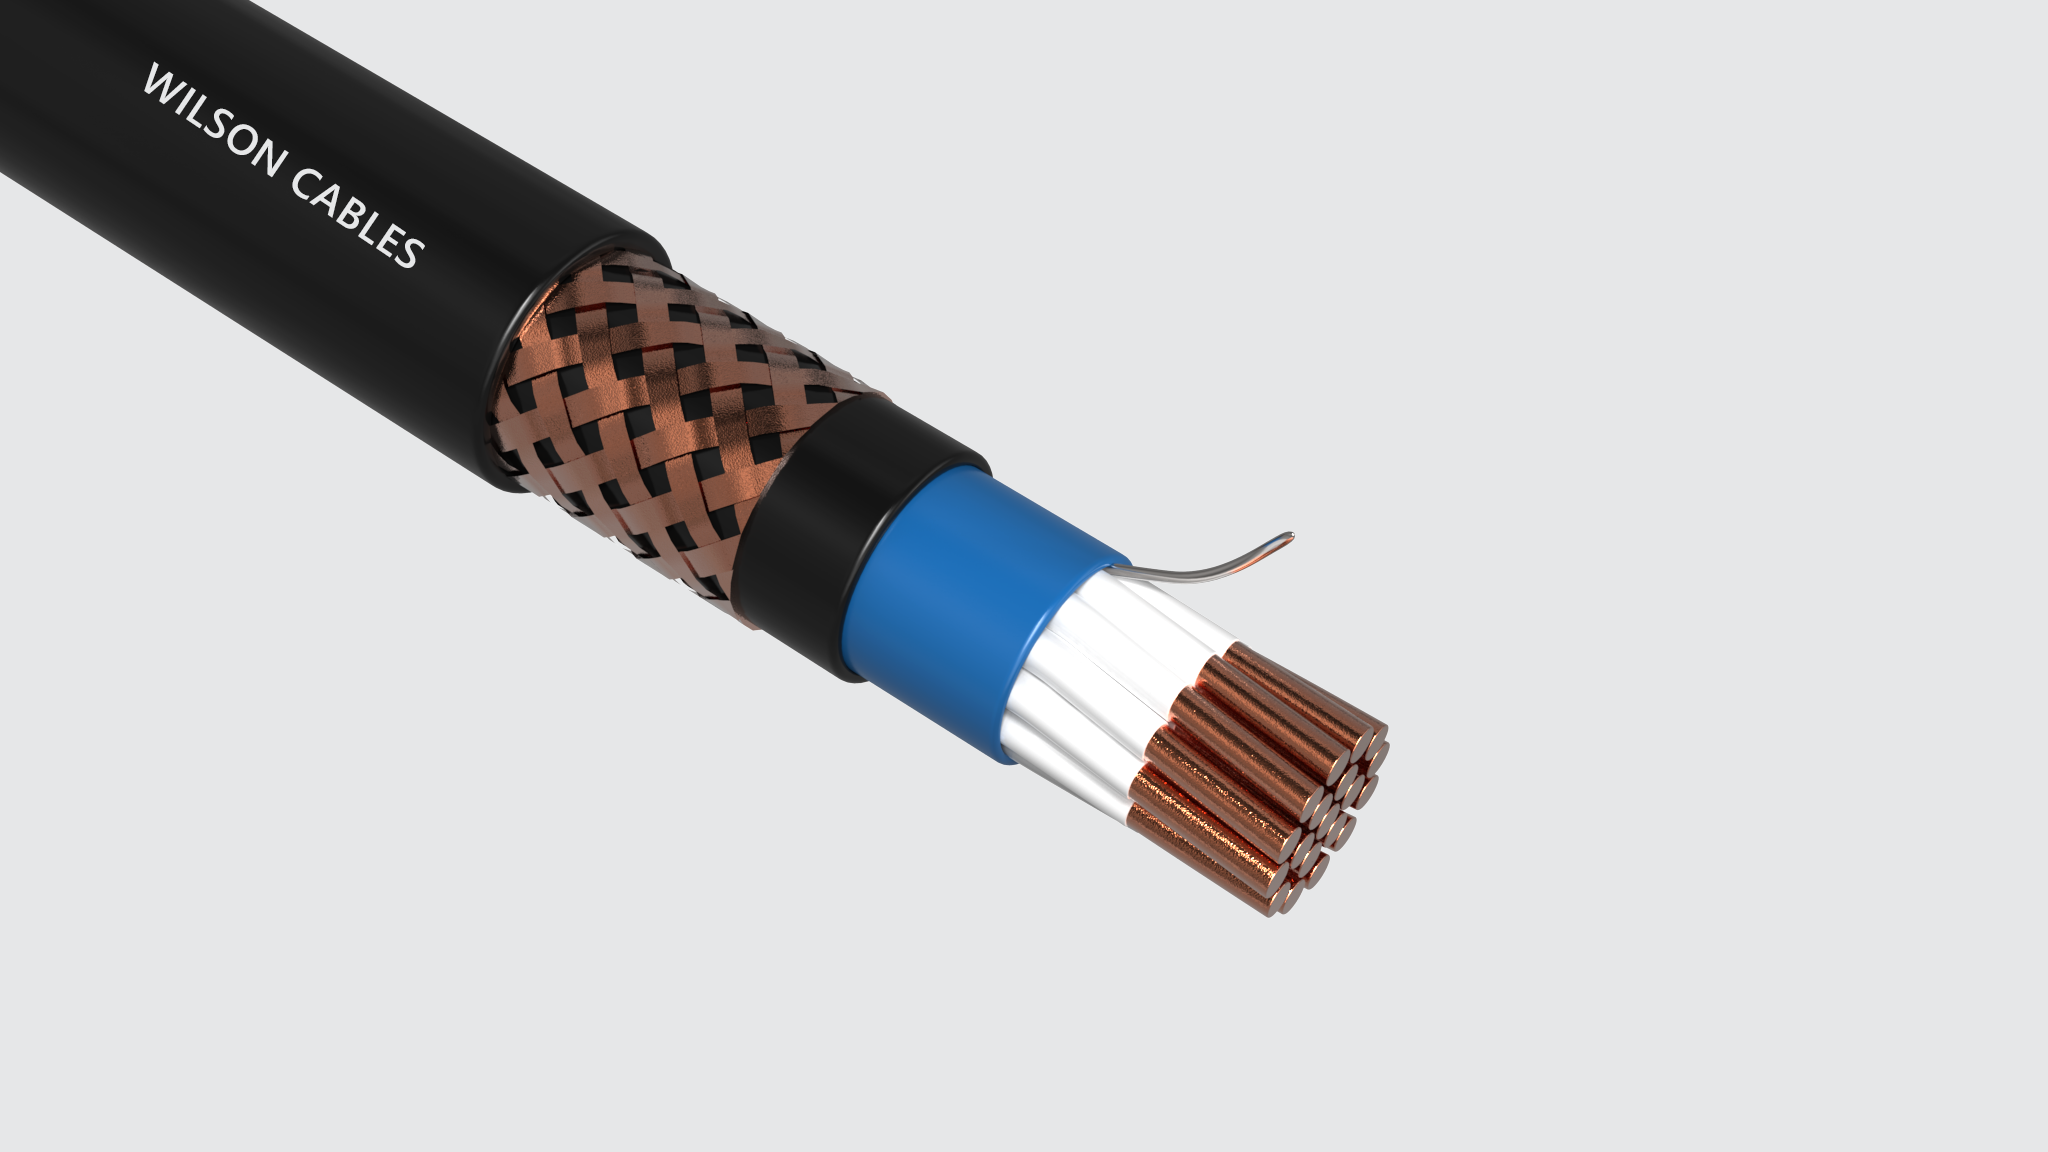 MIM-200Q / MIM-200C LSOH Sheathed Shipboard Braided Instrumentation Cables